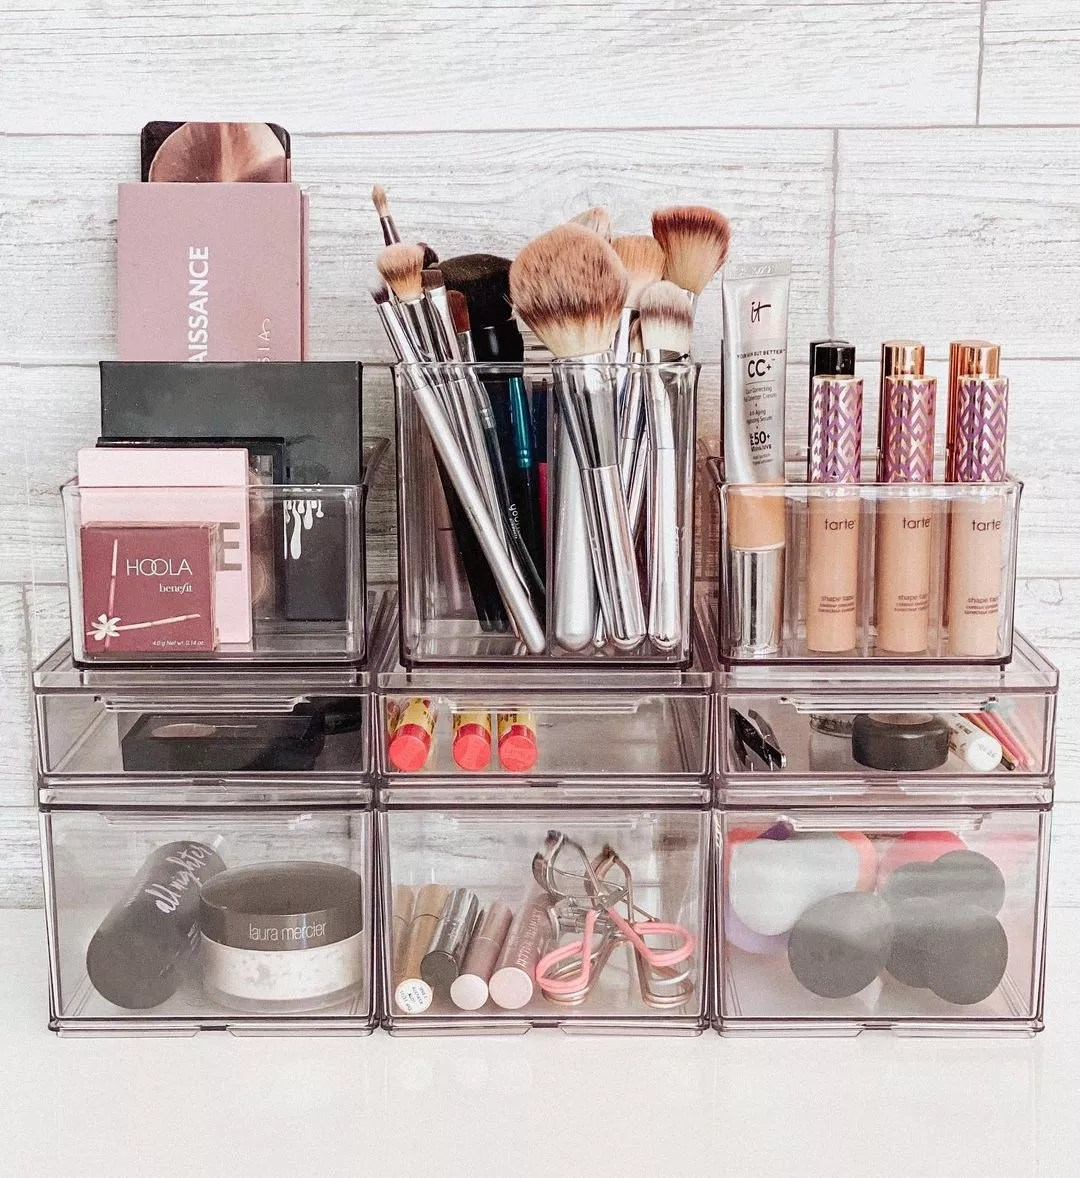 Makeup and makeup tools separated neatly in clear compartments. Photo by Instagram user @neatlyembellished.